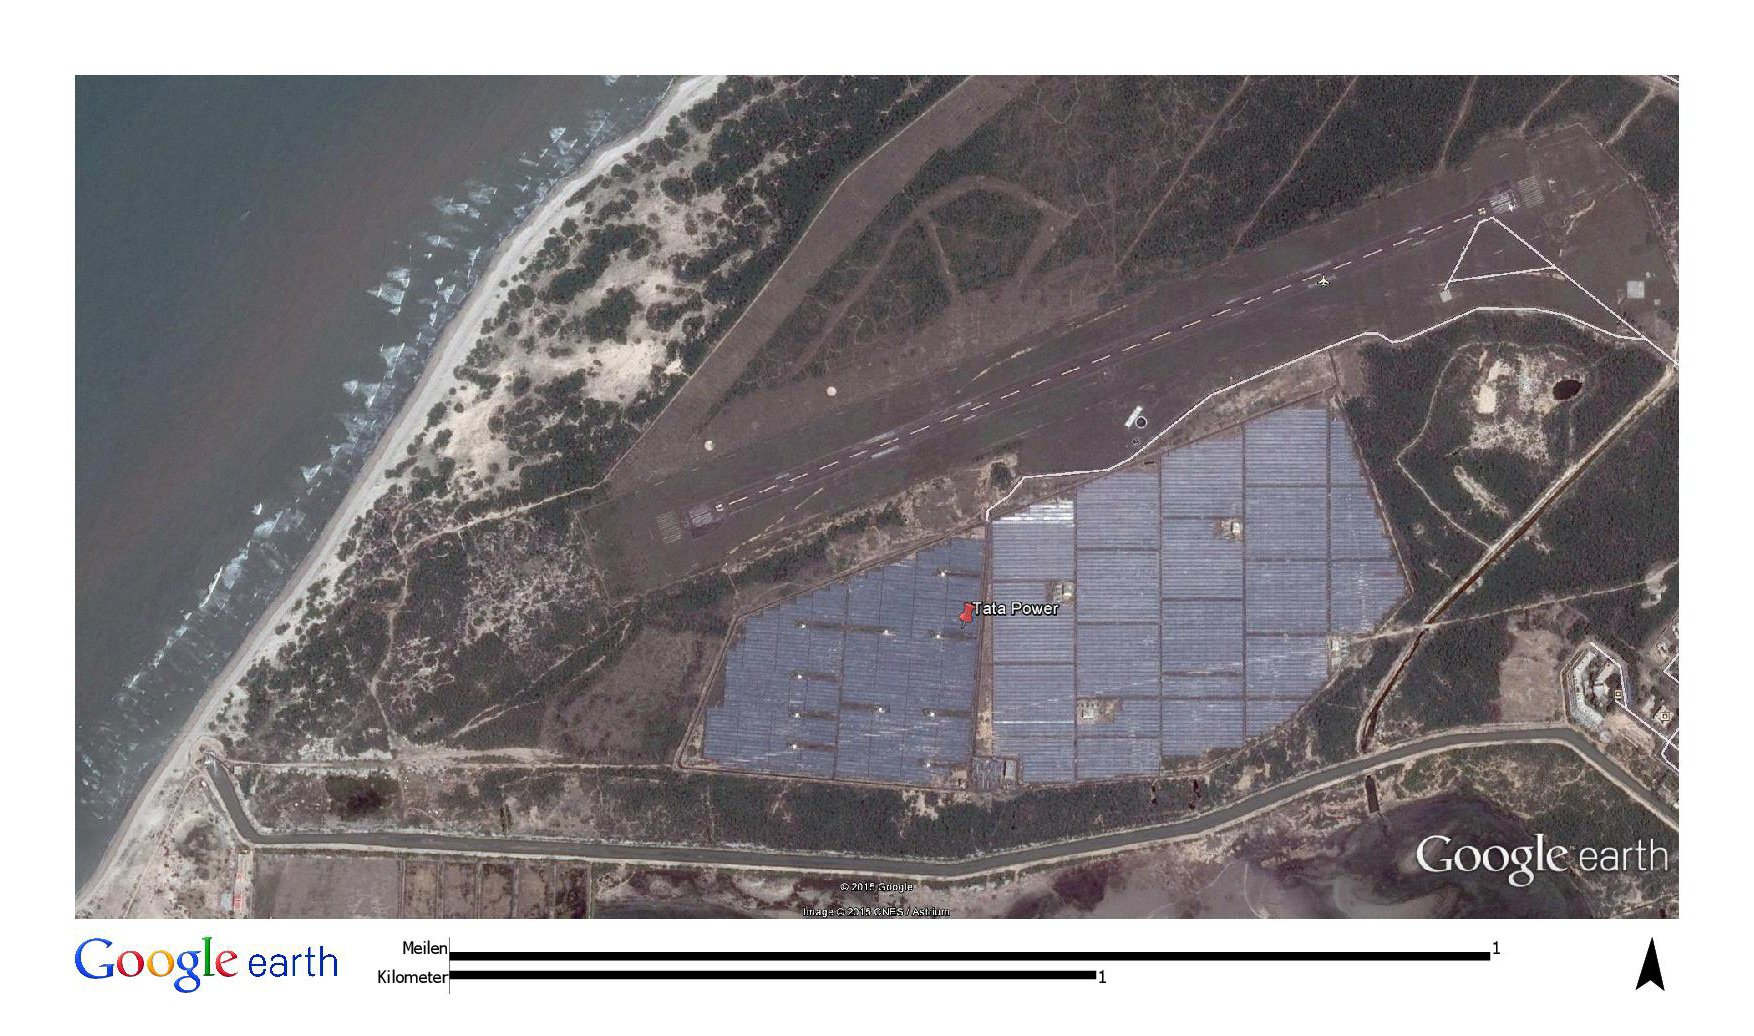 The Indian PV power plant is not only close to the sea but also right next to a chemical plant